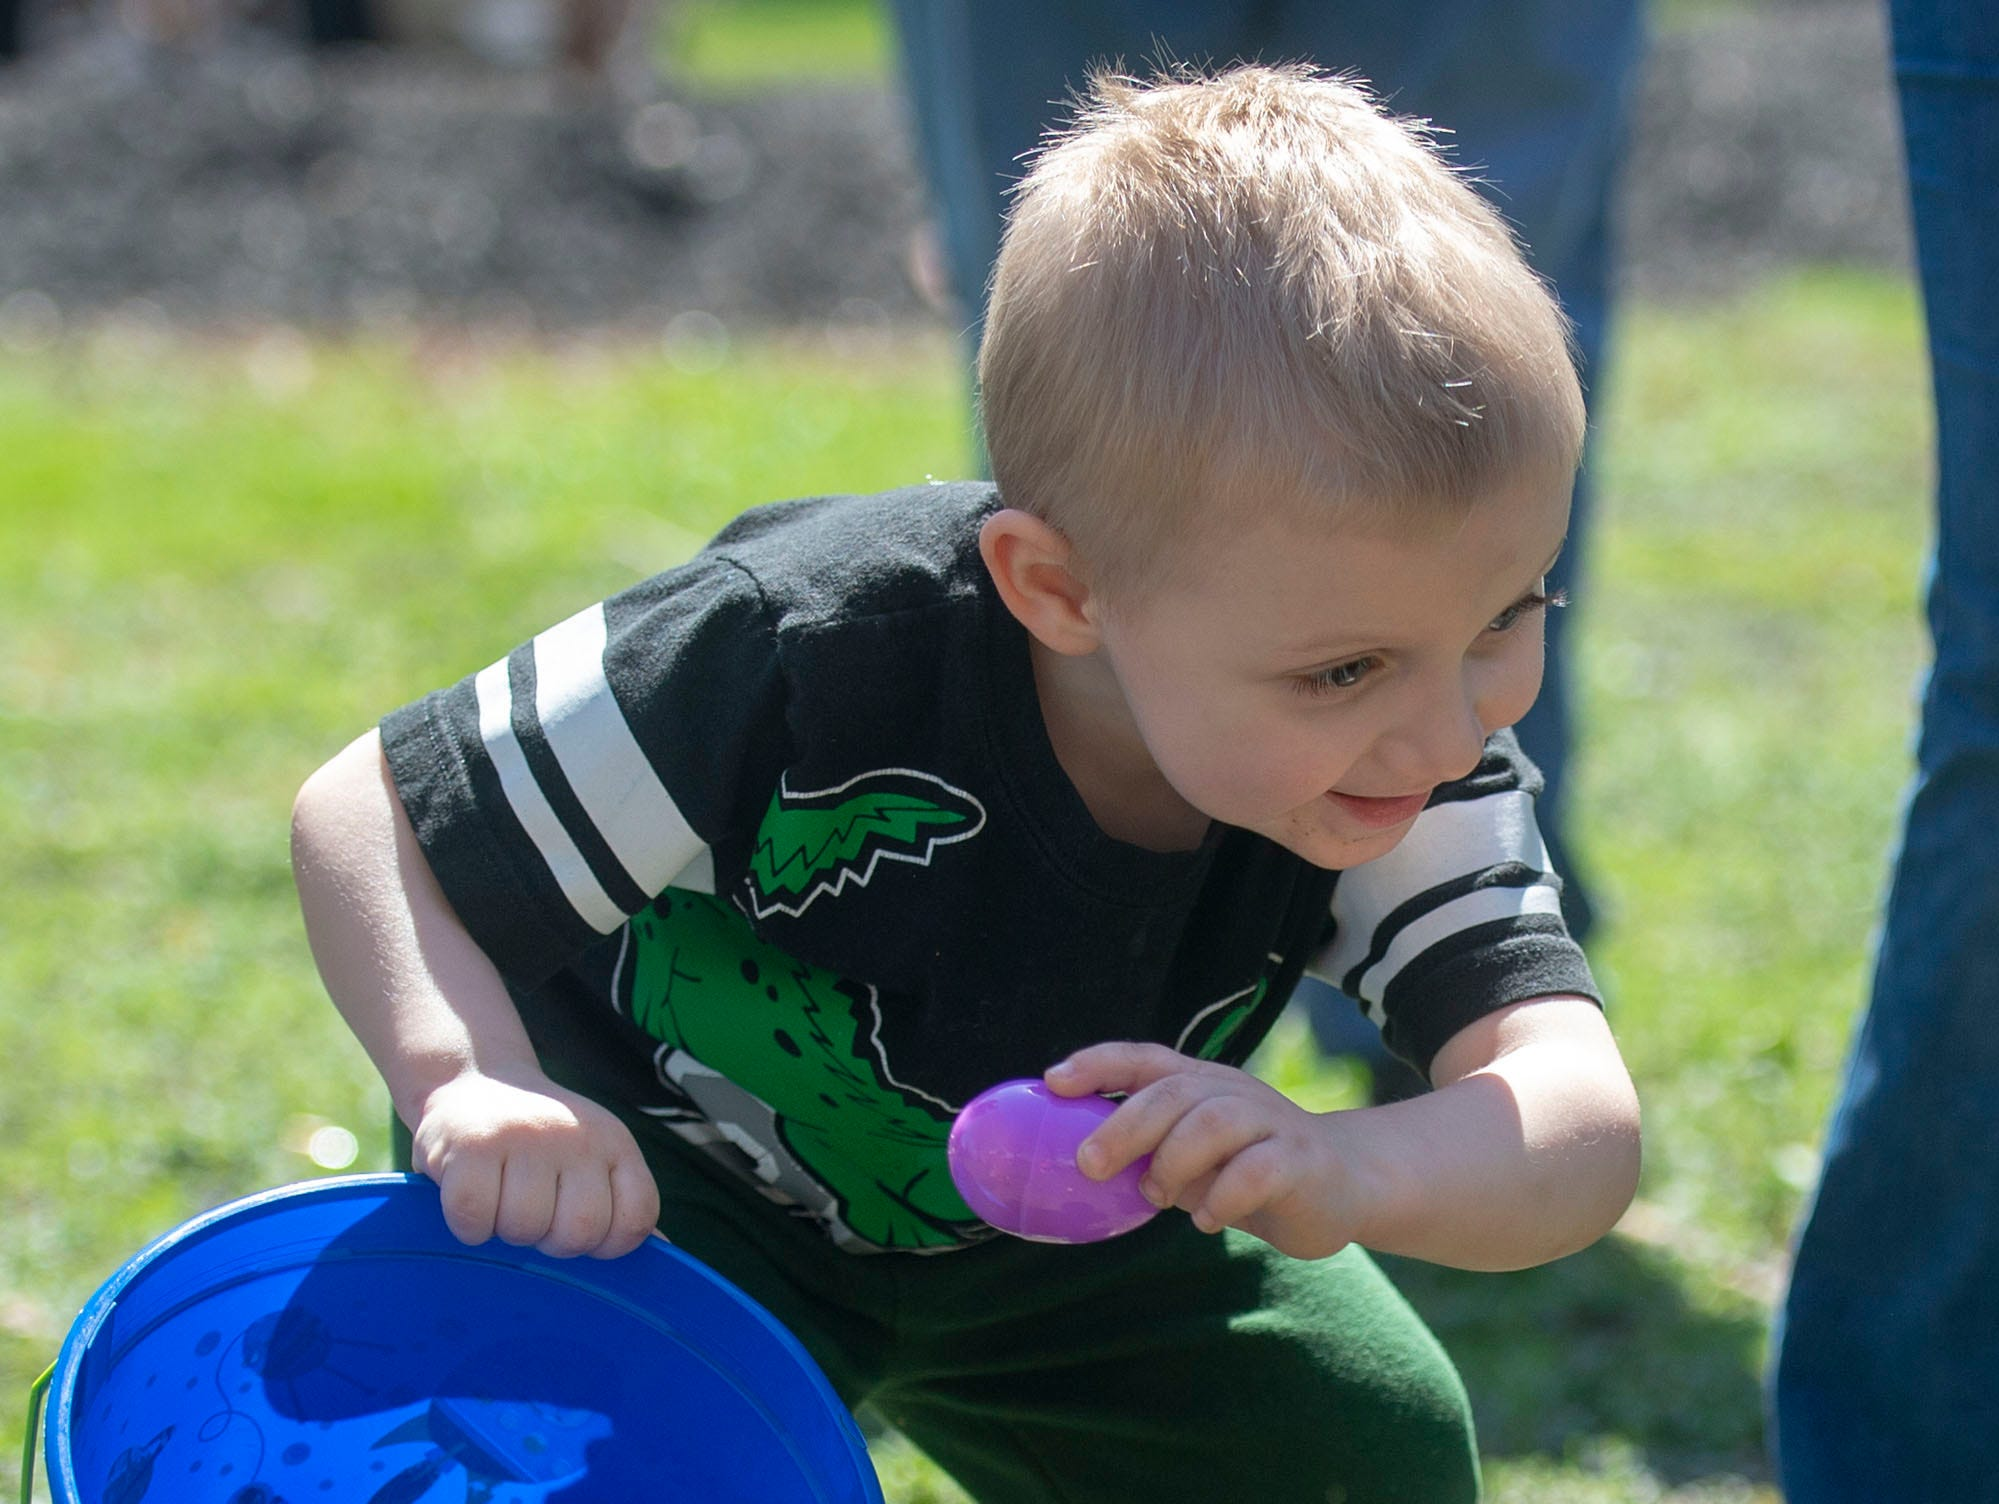 This purple egg is going in the bucket during the 1-3-year-old division at the City of York's Easter Egg Hunt at Kiwanis Lake on Saturday, April 13, 2019.